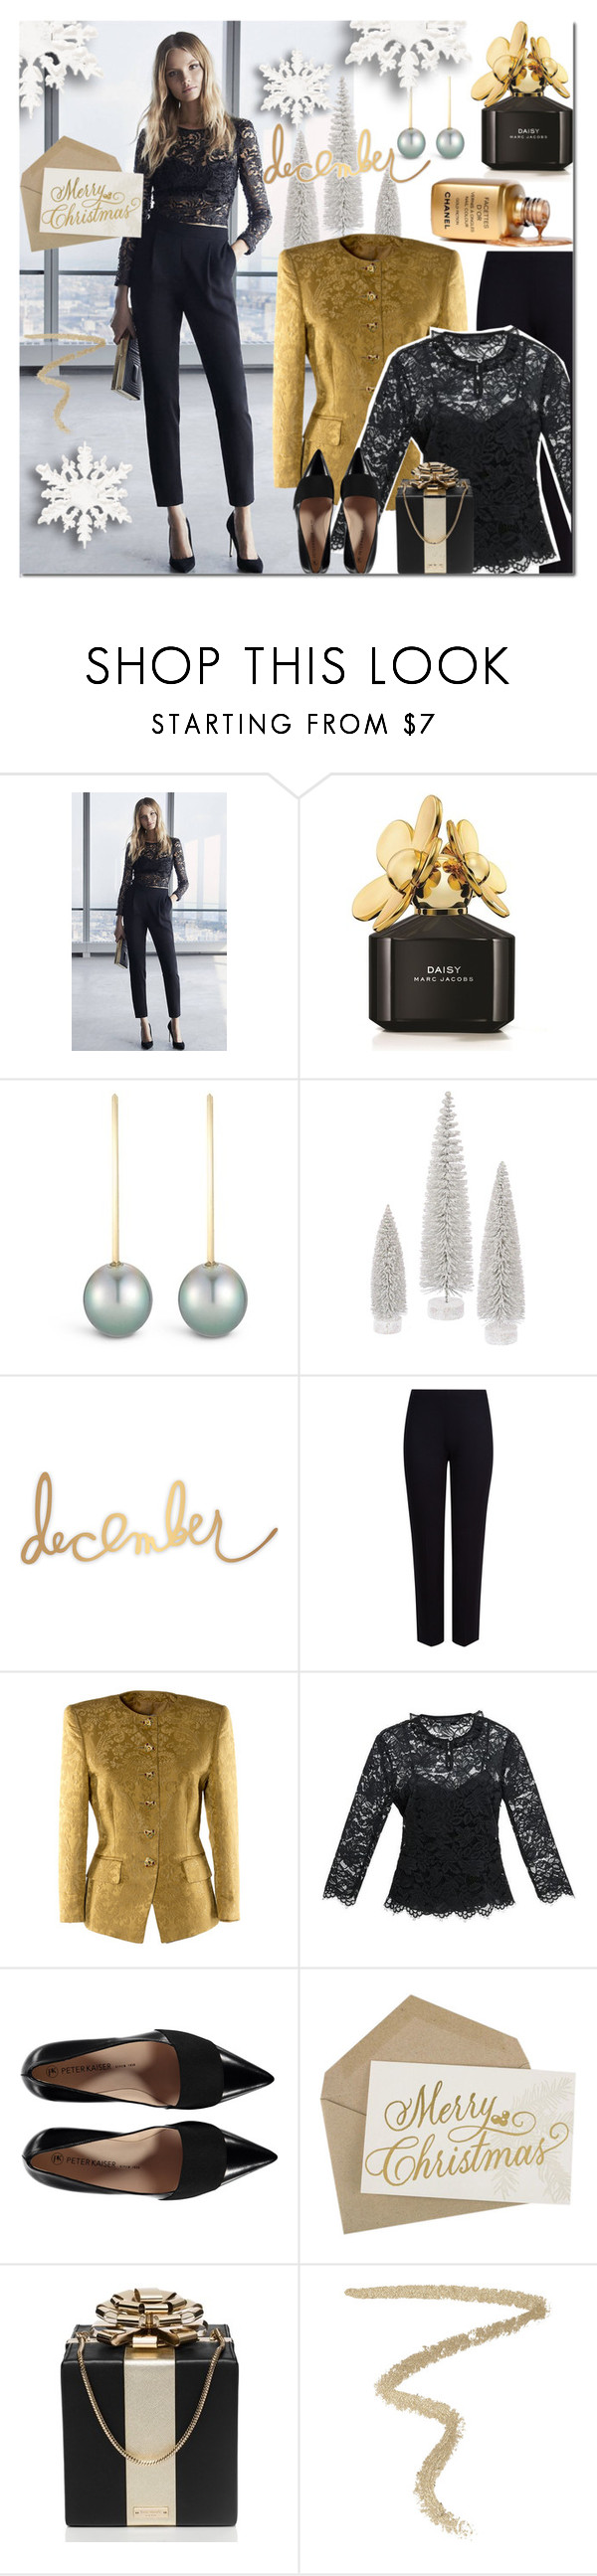 """""""Merry Christmas!"""" by elena-starling ❤ liked on Polyvore featuring Marc Jacobs, M&S Collection, Rena Lange, Marc by Marc Jacobs, Kate Spade, By Terry, Christmas, gold, fallwinter2015 and Christmas2015"""